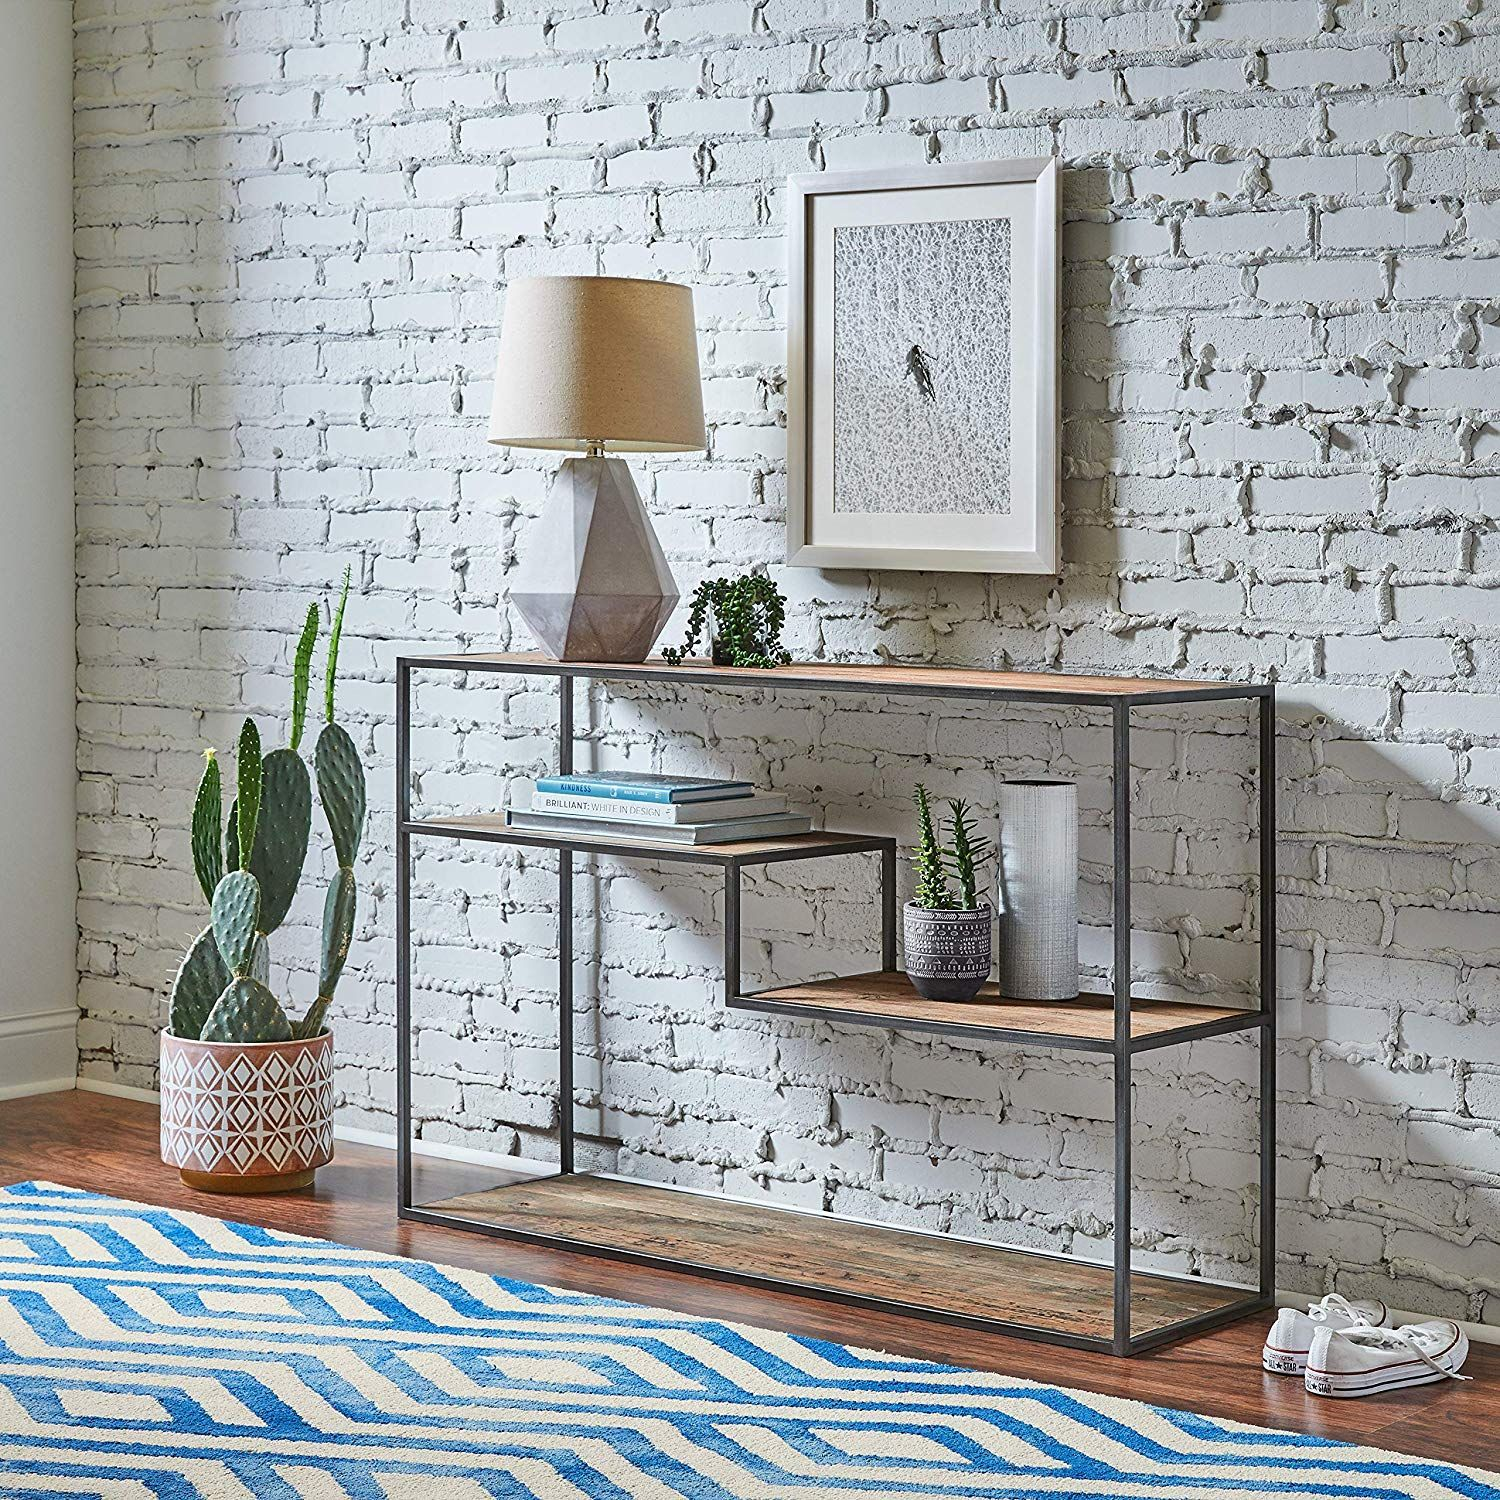 Cheap Loft Apartments: Amazon's Most Stylish Small-Space Buys In 2020